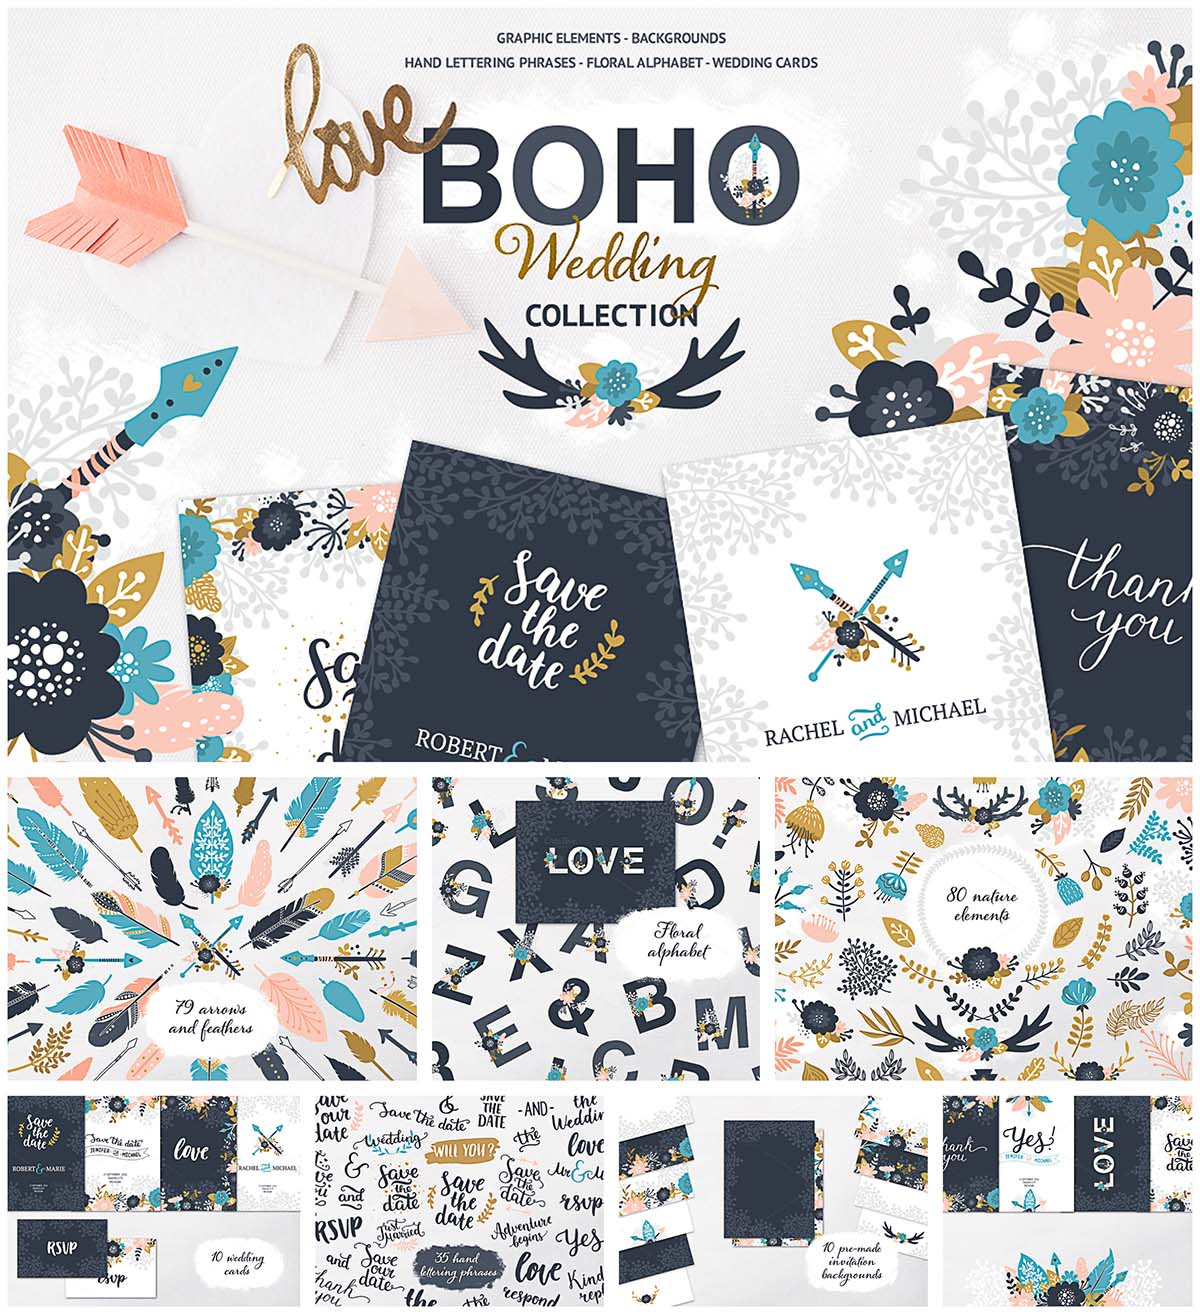 Boho wedding collection